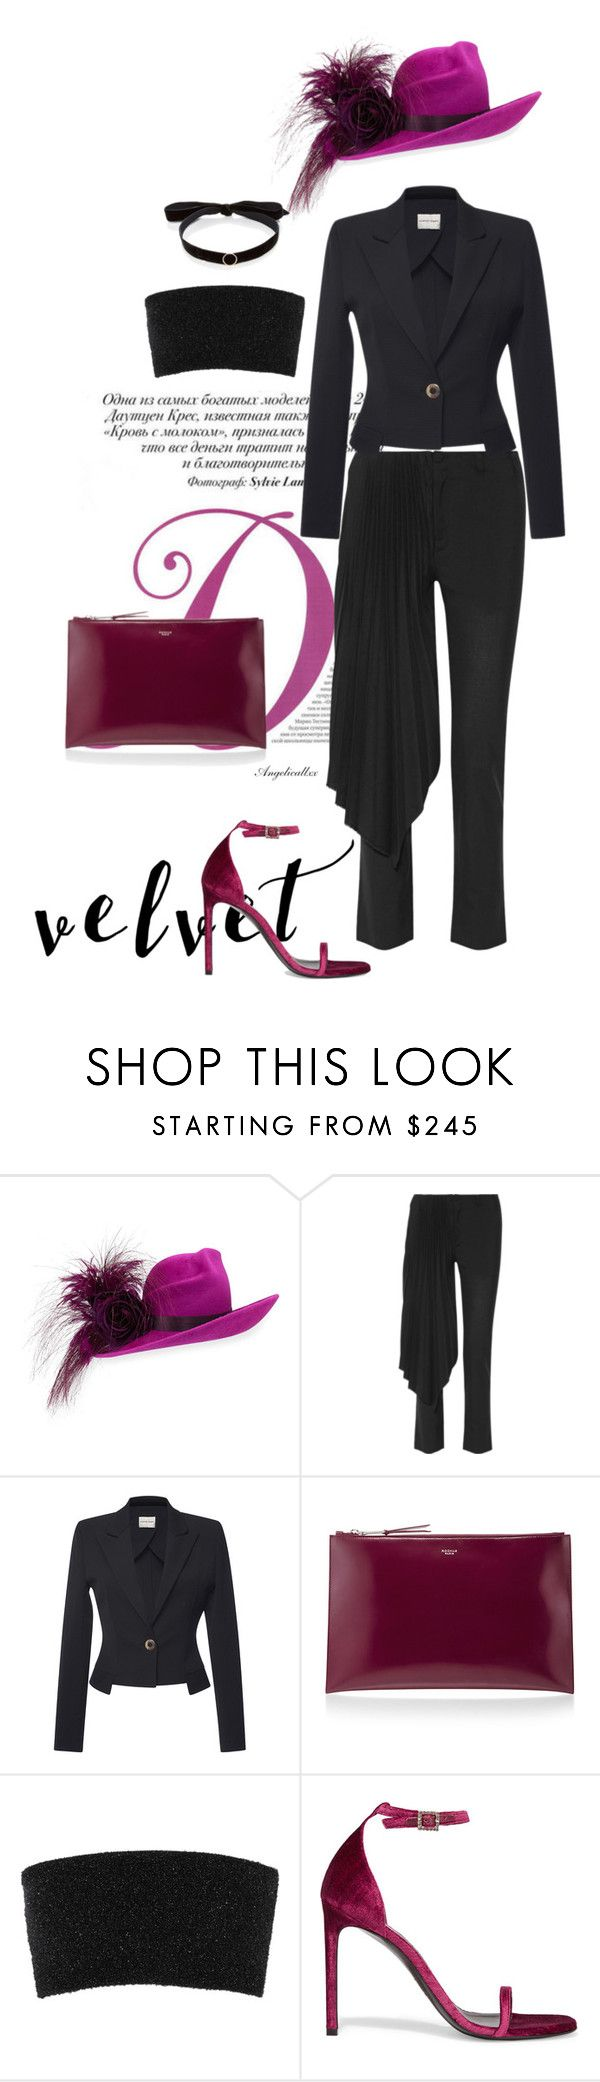 """""""f a n c y"""" by angelicallxx ❤ liked on Polyvore featuring Philip Treacy, Facetasm, Emanuel Ungaro, Rochas, Calvin Klein Collection, Yves Saint Laurent, Mateo and velvet"""